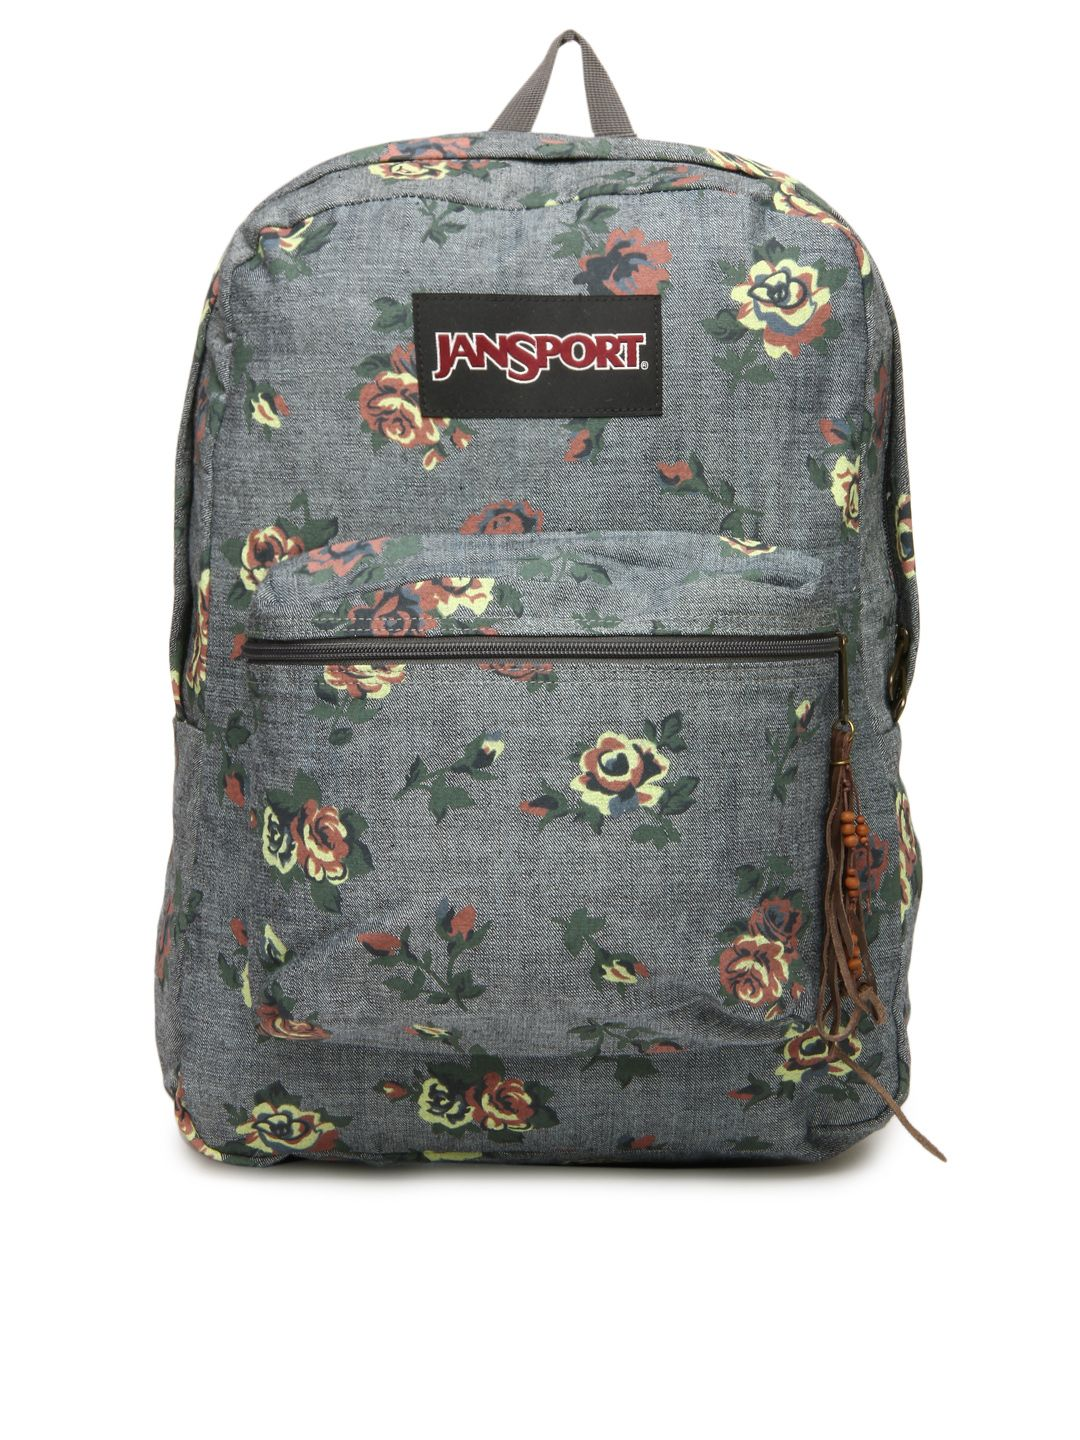 Jansport Floral Backpack - Crazy Backpacks | Look Likes ...